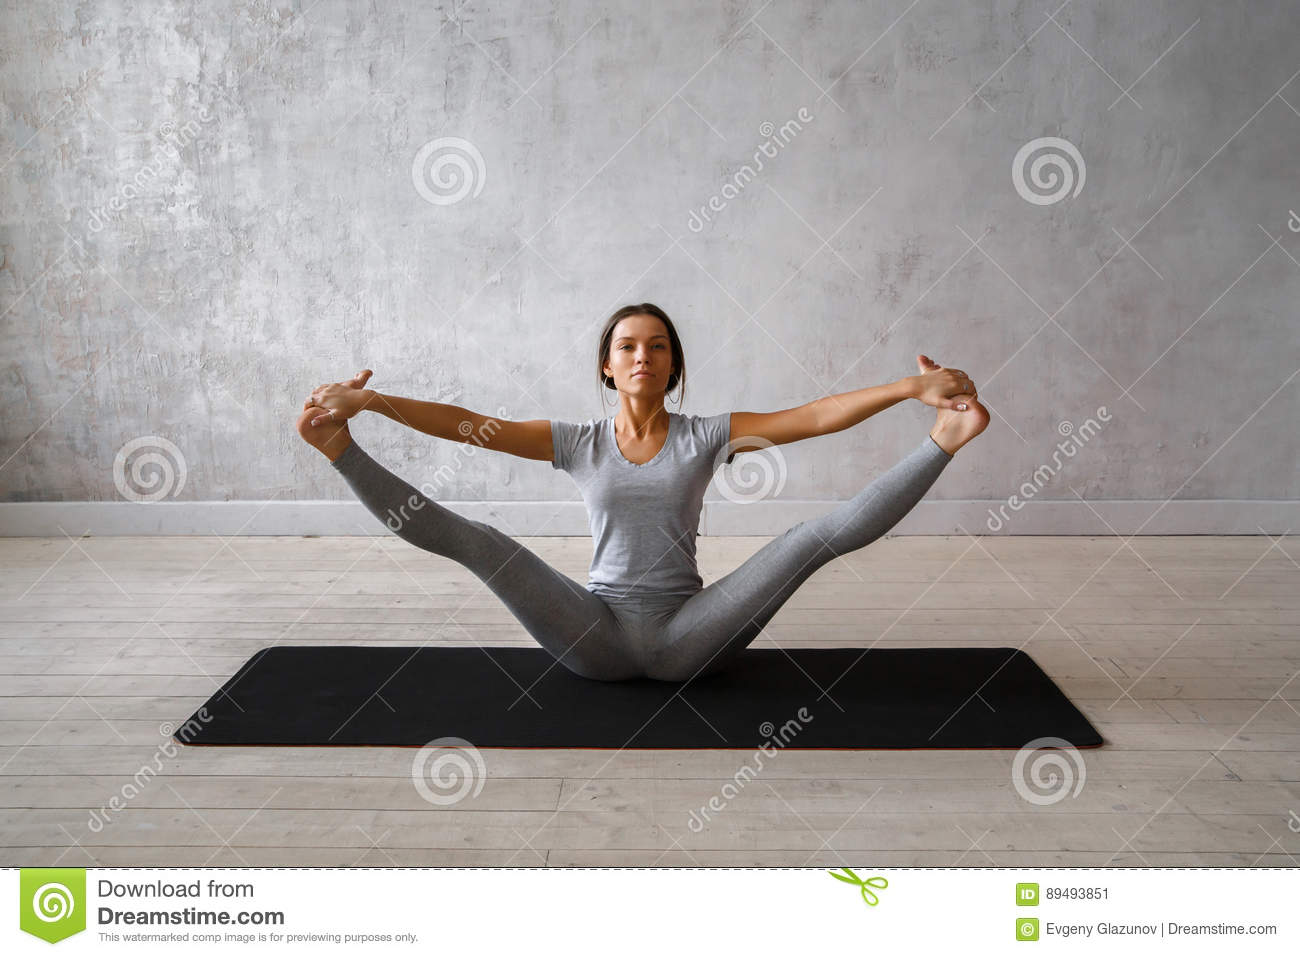 Woman Practicing Advanced Yoga A Series Of Yoga Poses Stock Image Image Of Ckground Studio 89493851